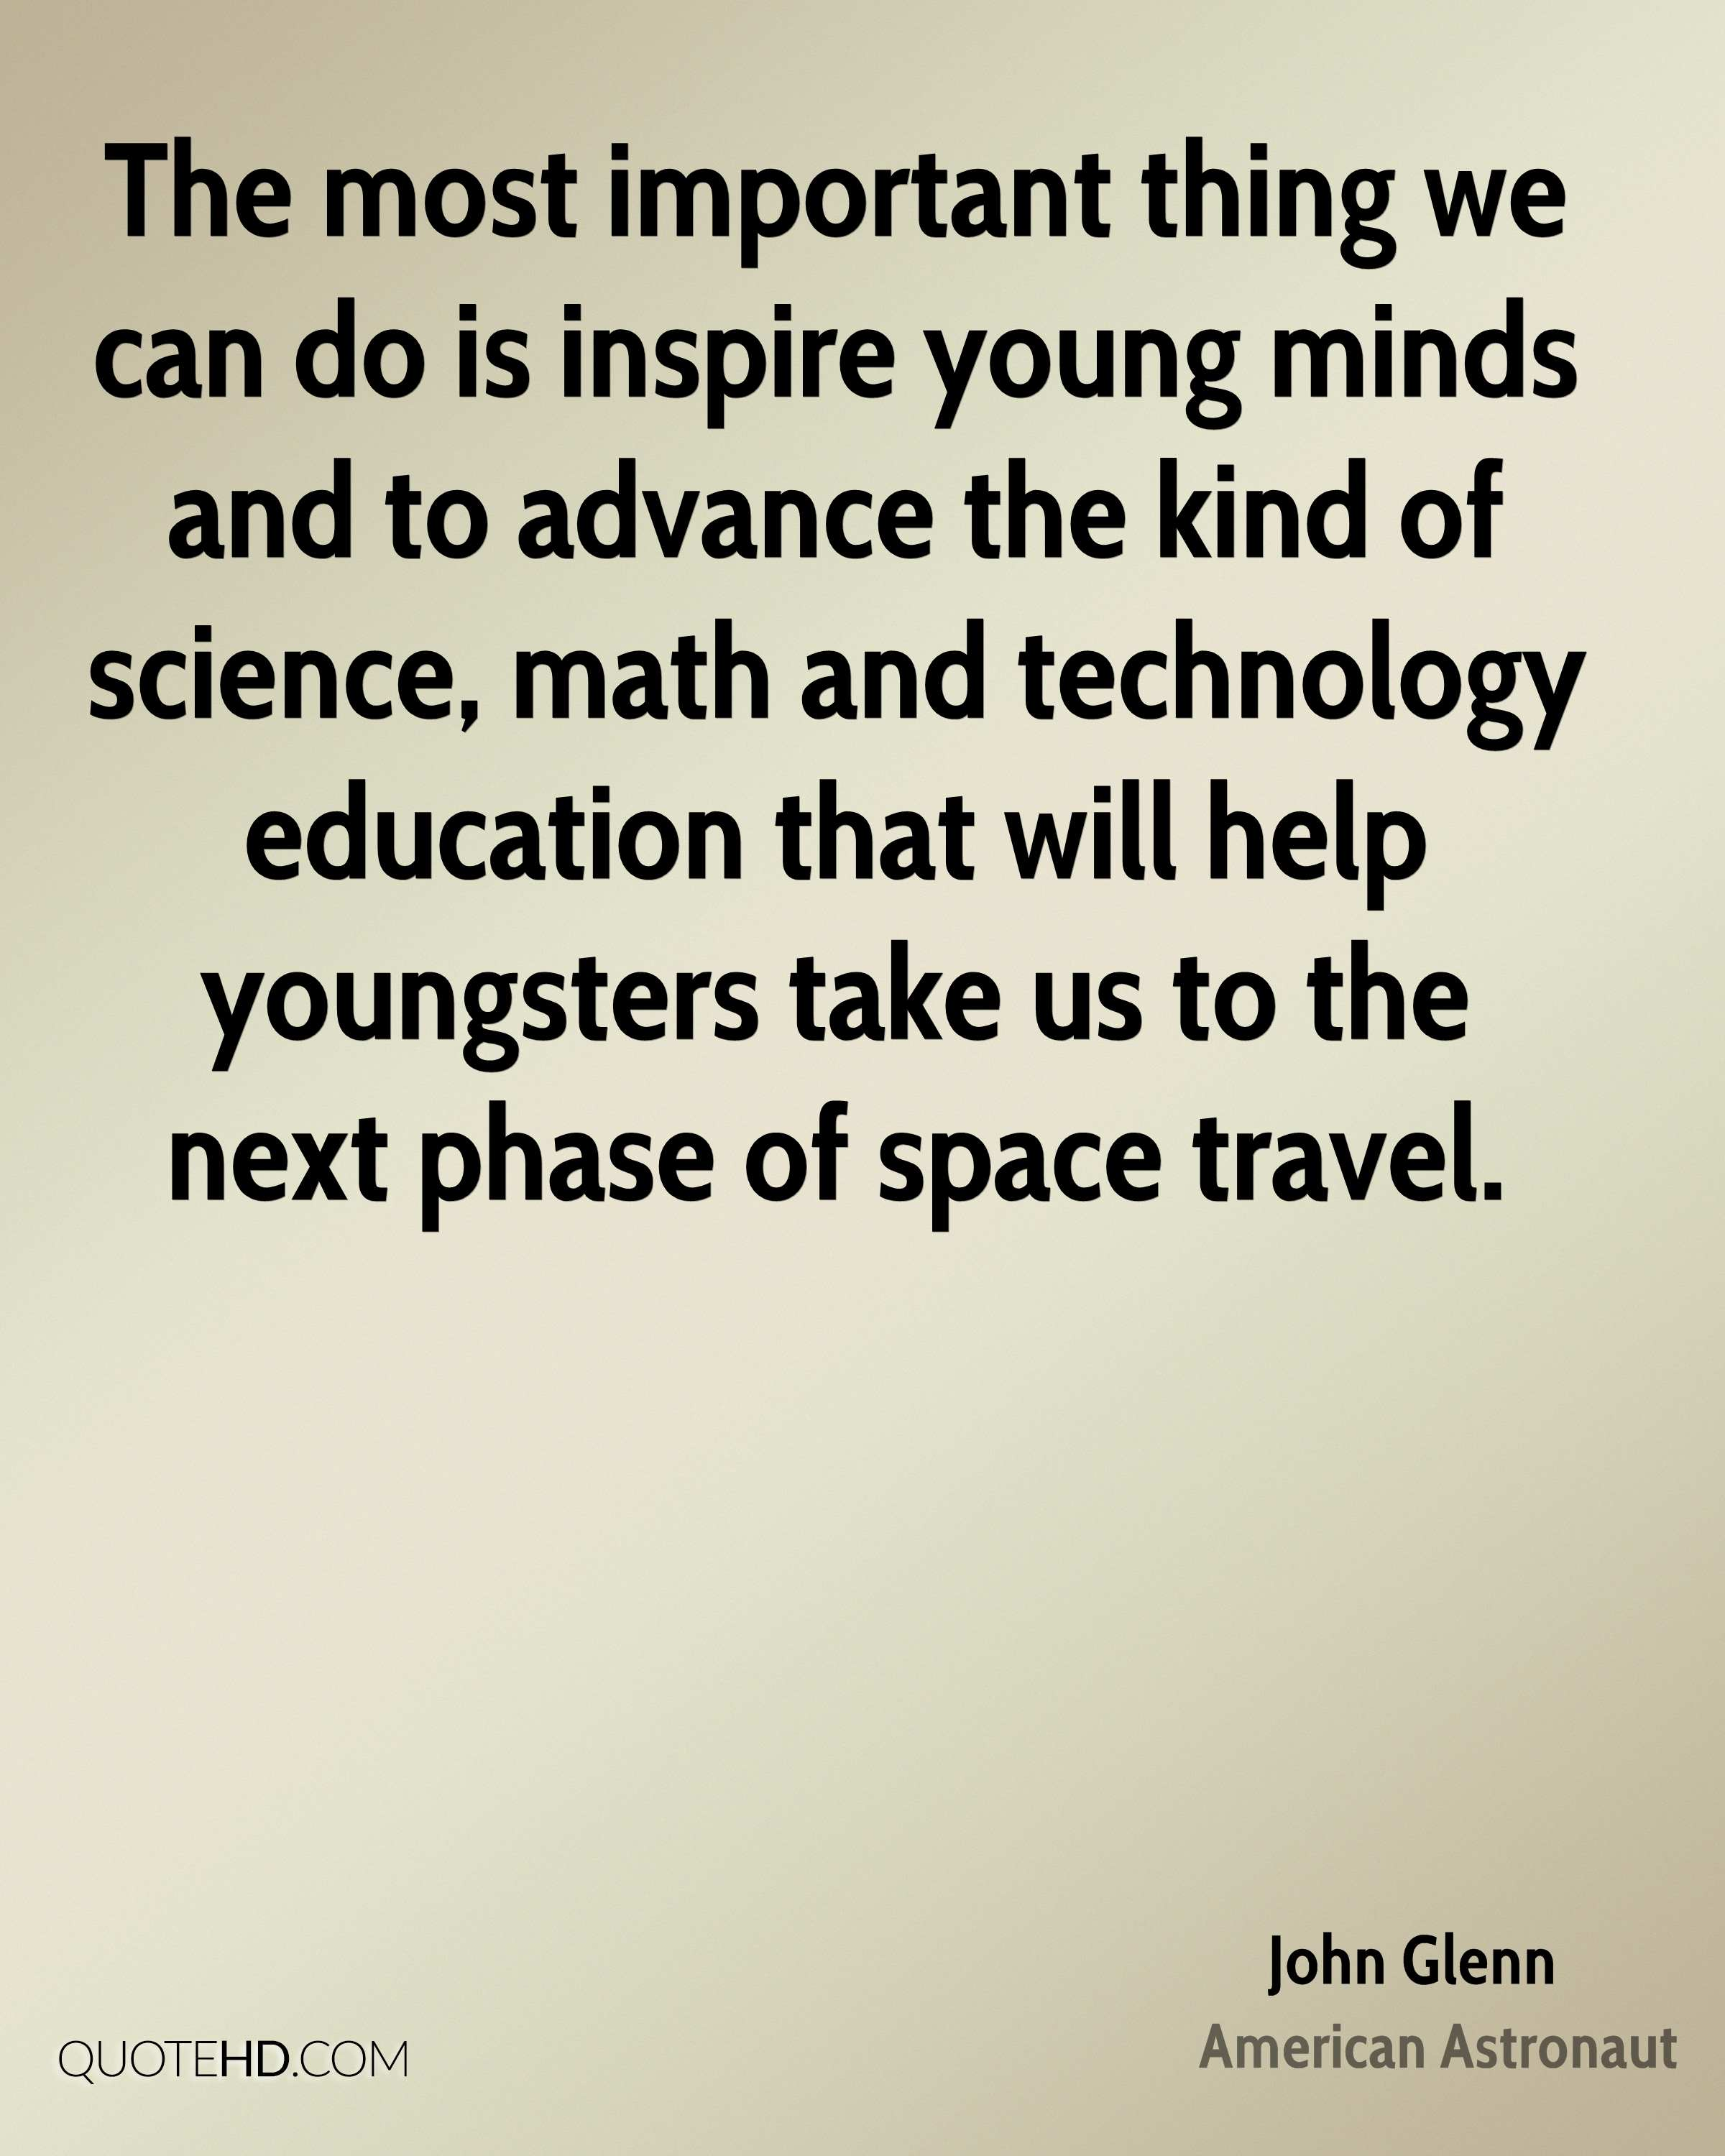 The most important thing we can do is inspire young minds and to advance the kind of science, math and technology education that will help youngsters take us to the next phase of space travel.